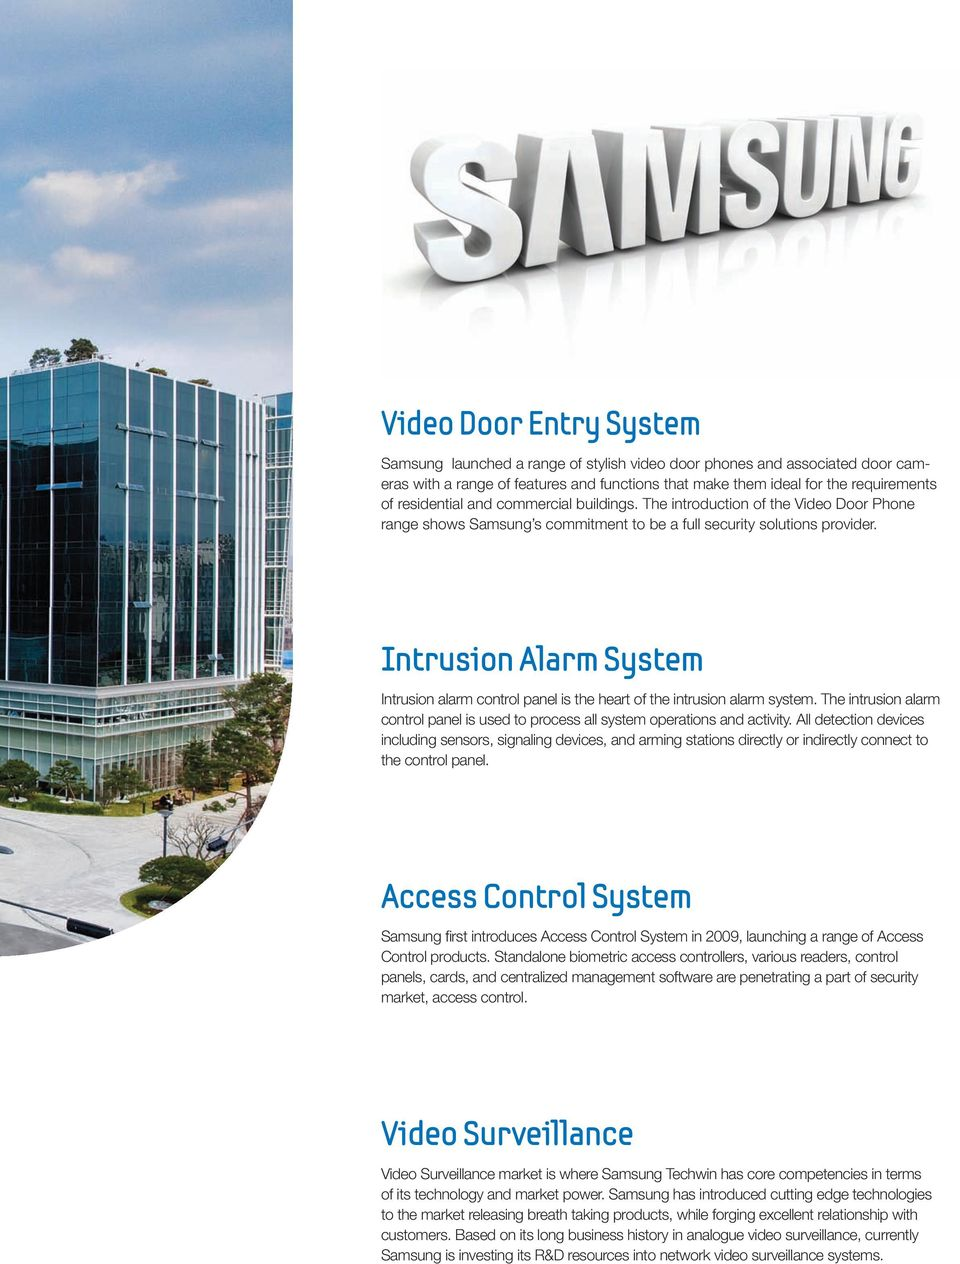 Intrusion Alarm System Intrusion alarm control panel is the heart of the intrusion alarm system. The intrusion alarm control panel is used to process all system operations and activity.